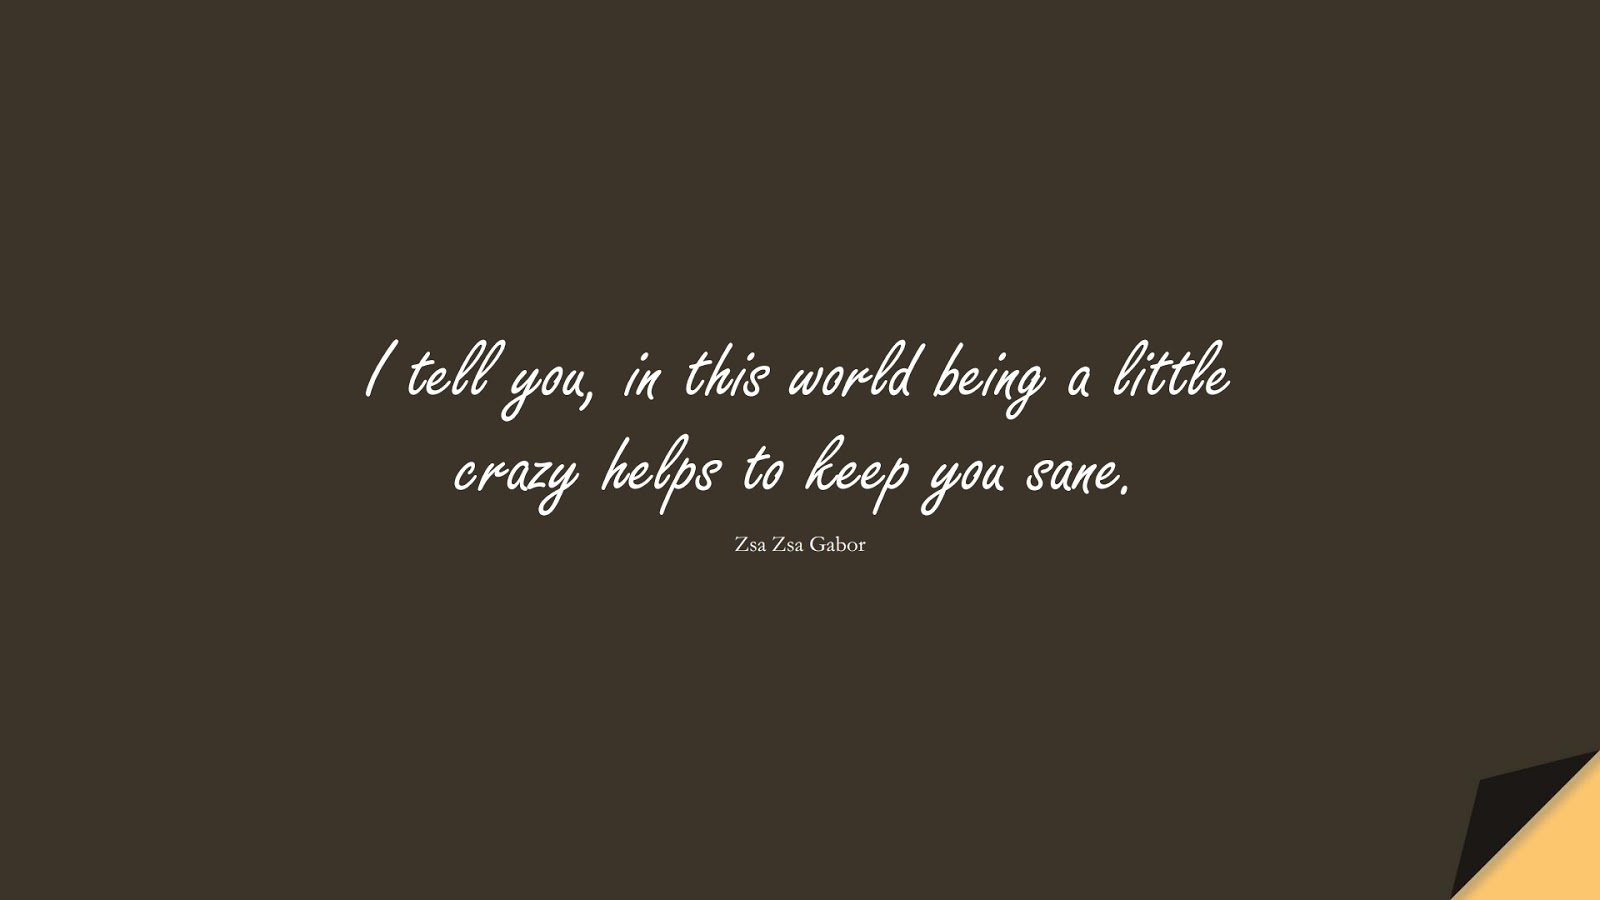 I tell you, in this world being a little crazy helps to keep you sane. (Zsa Zsa Gabor);  #LifeQuotes